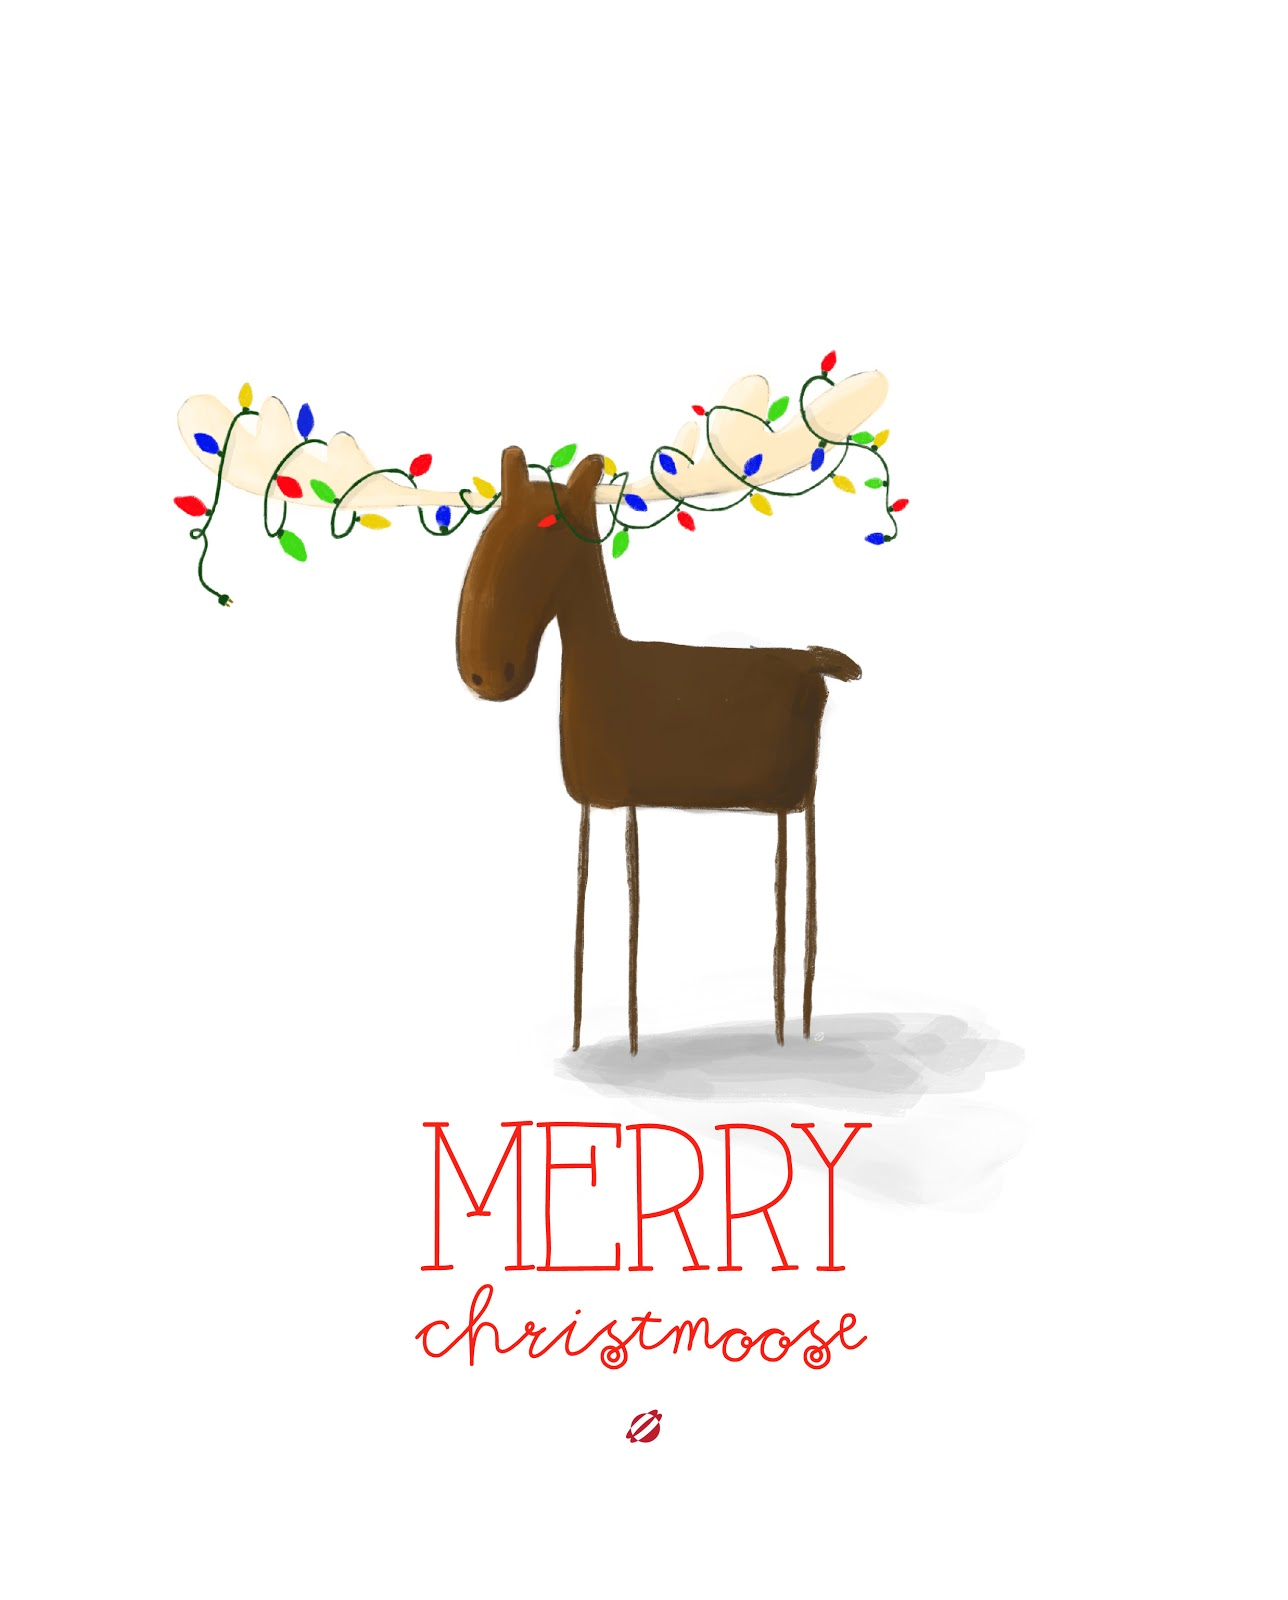 LostBumblebee ©2014 MDBN MERRY CHRISTMOOSE 1 Free Printable Personal Use Only.